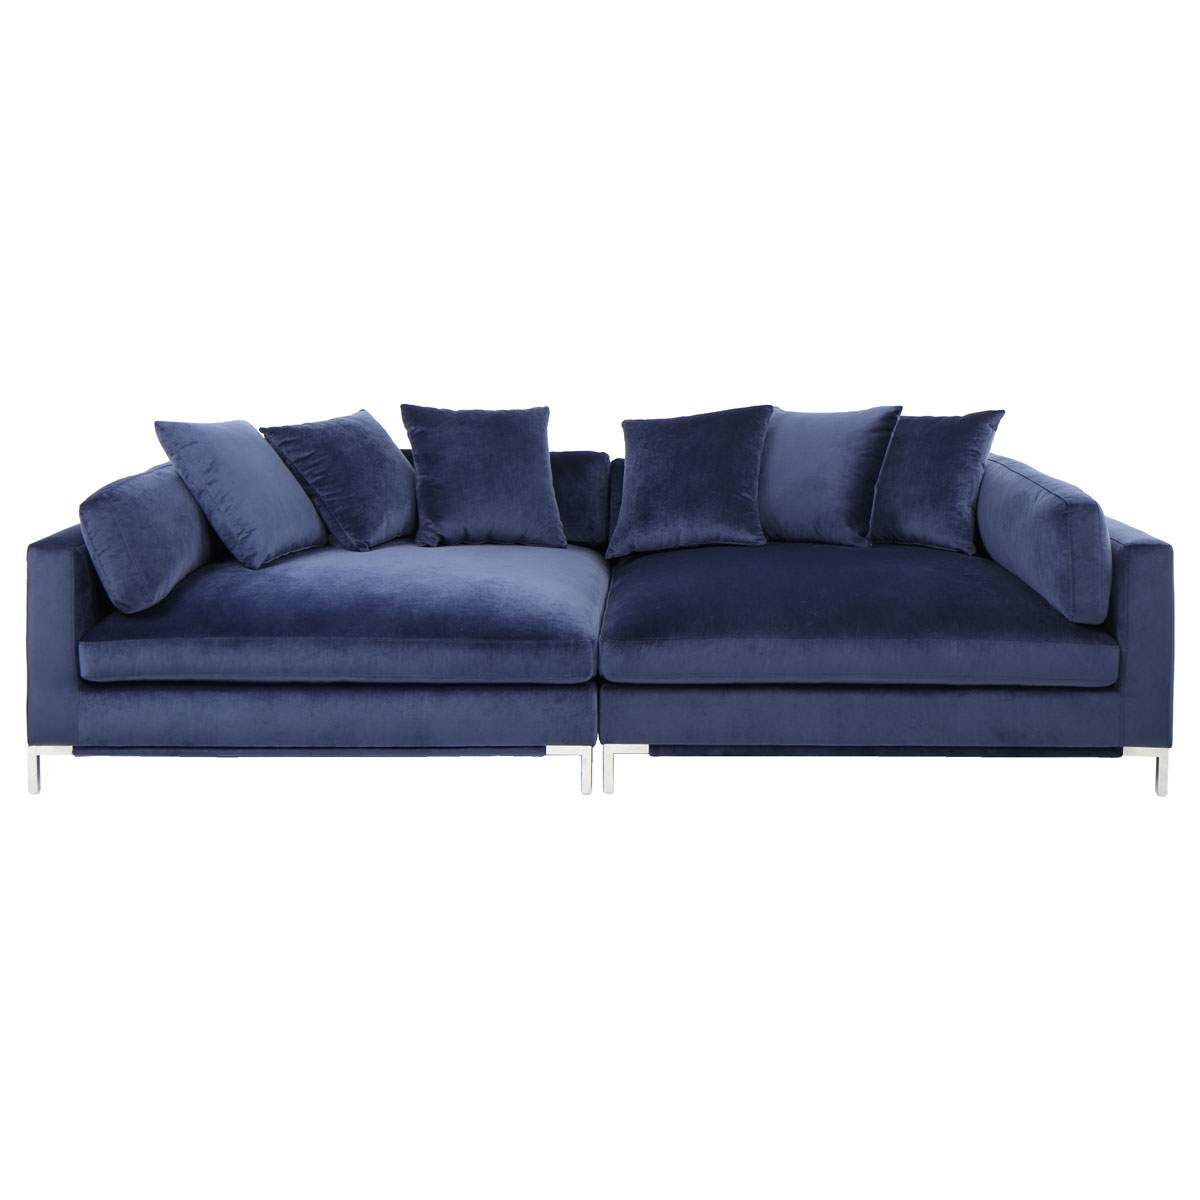 Astounding Belair Sofa In Blue Jeromes Furniture In 2019 Gmtry Best Dining Table And Chair Ideas Images Gmtryco